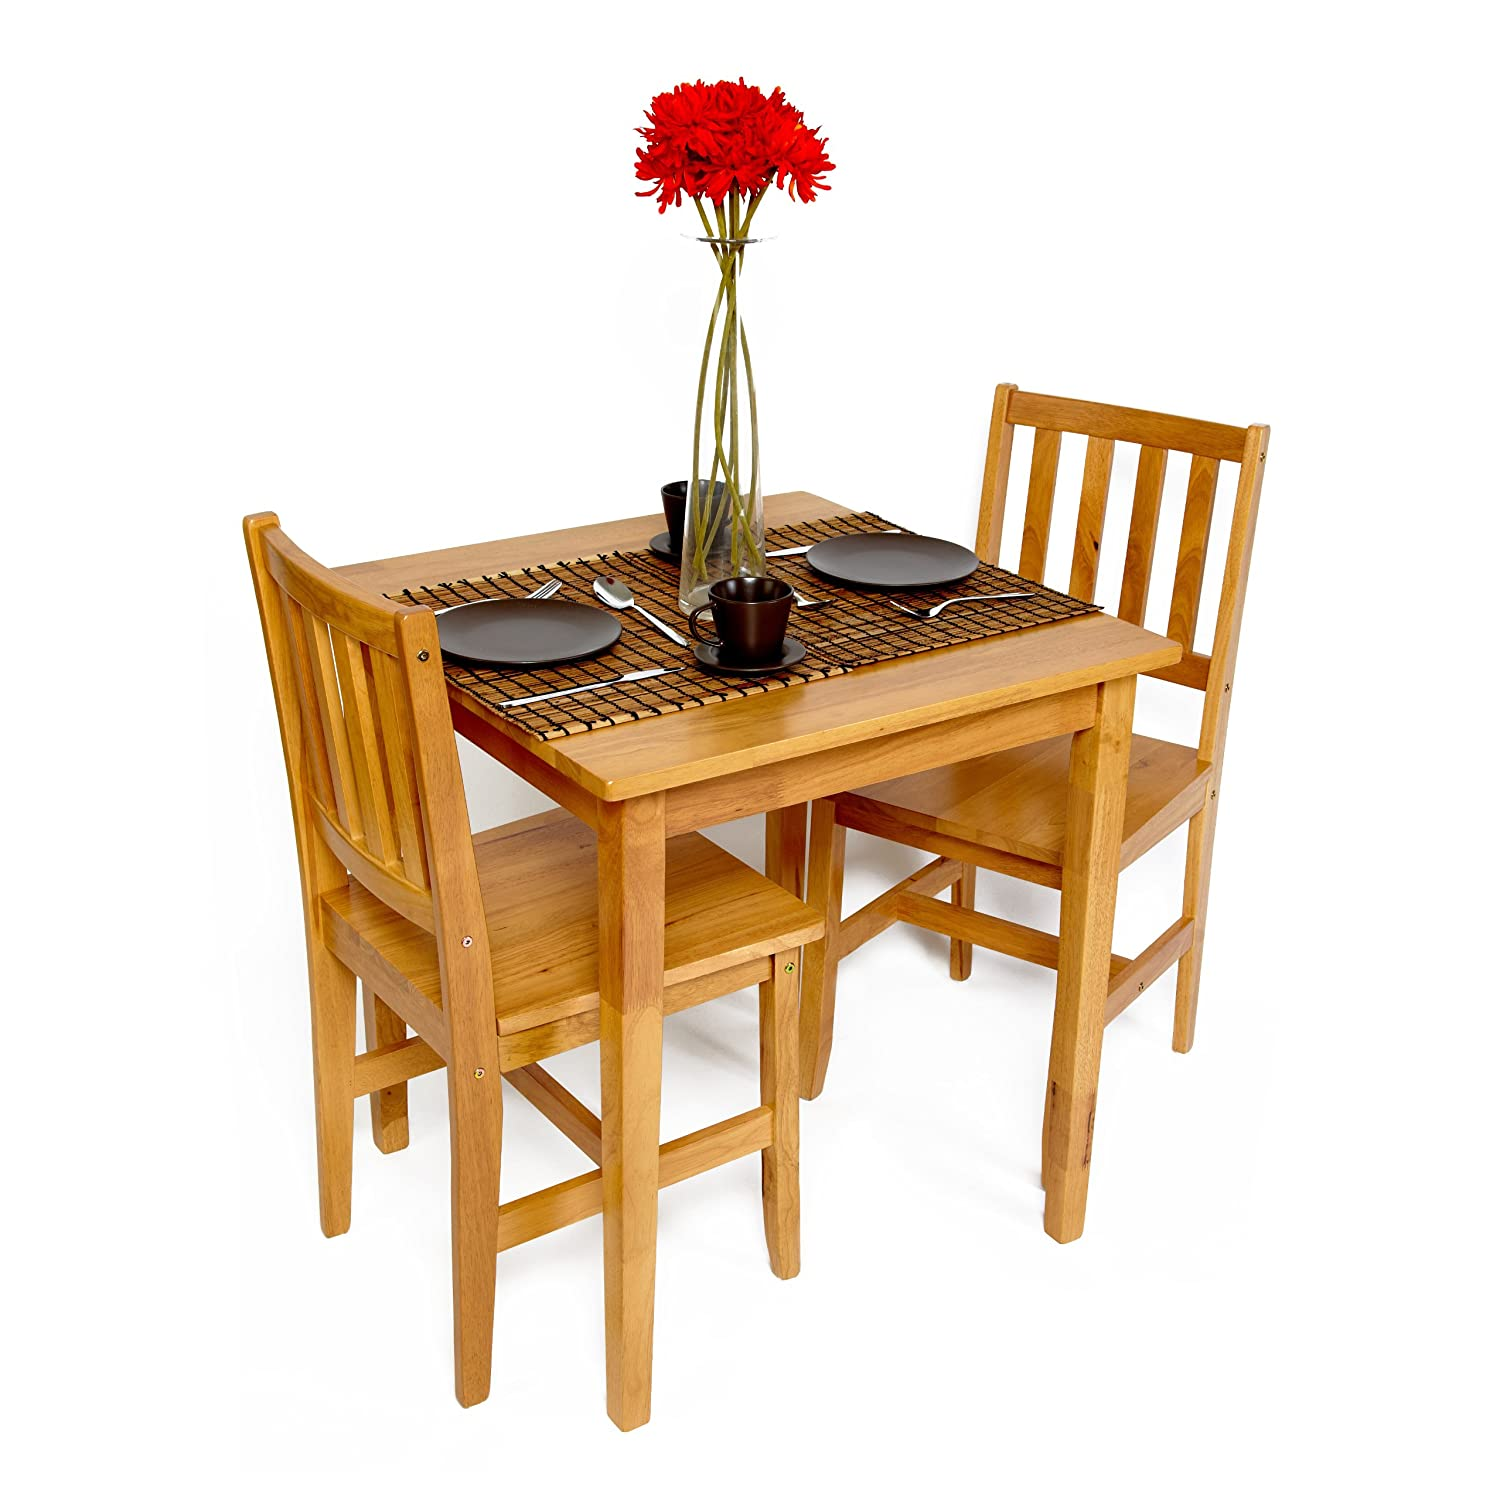 Table and chairs set dining bistro small cafe tables wood Kitchen table and chairs